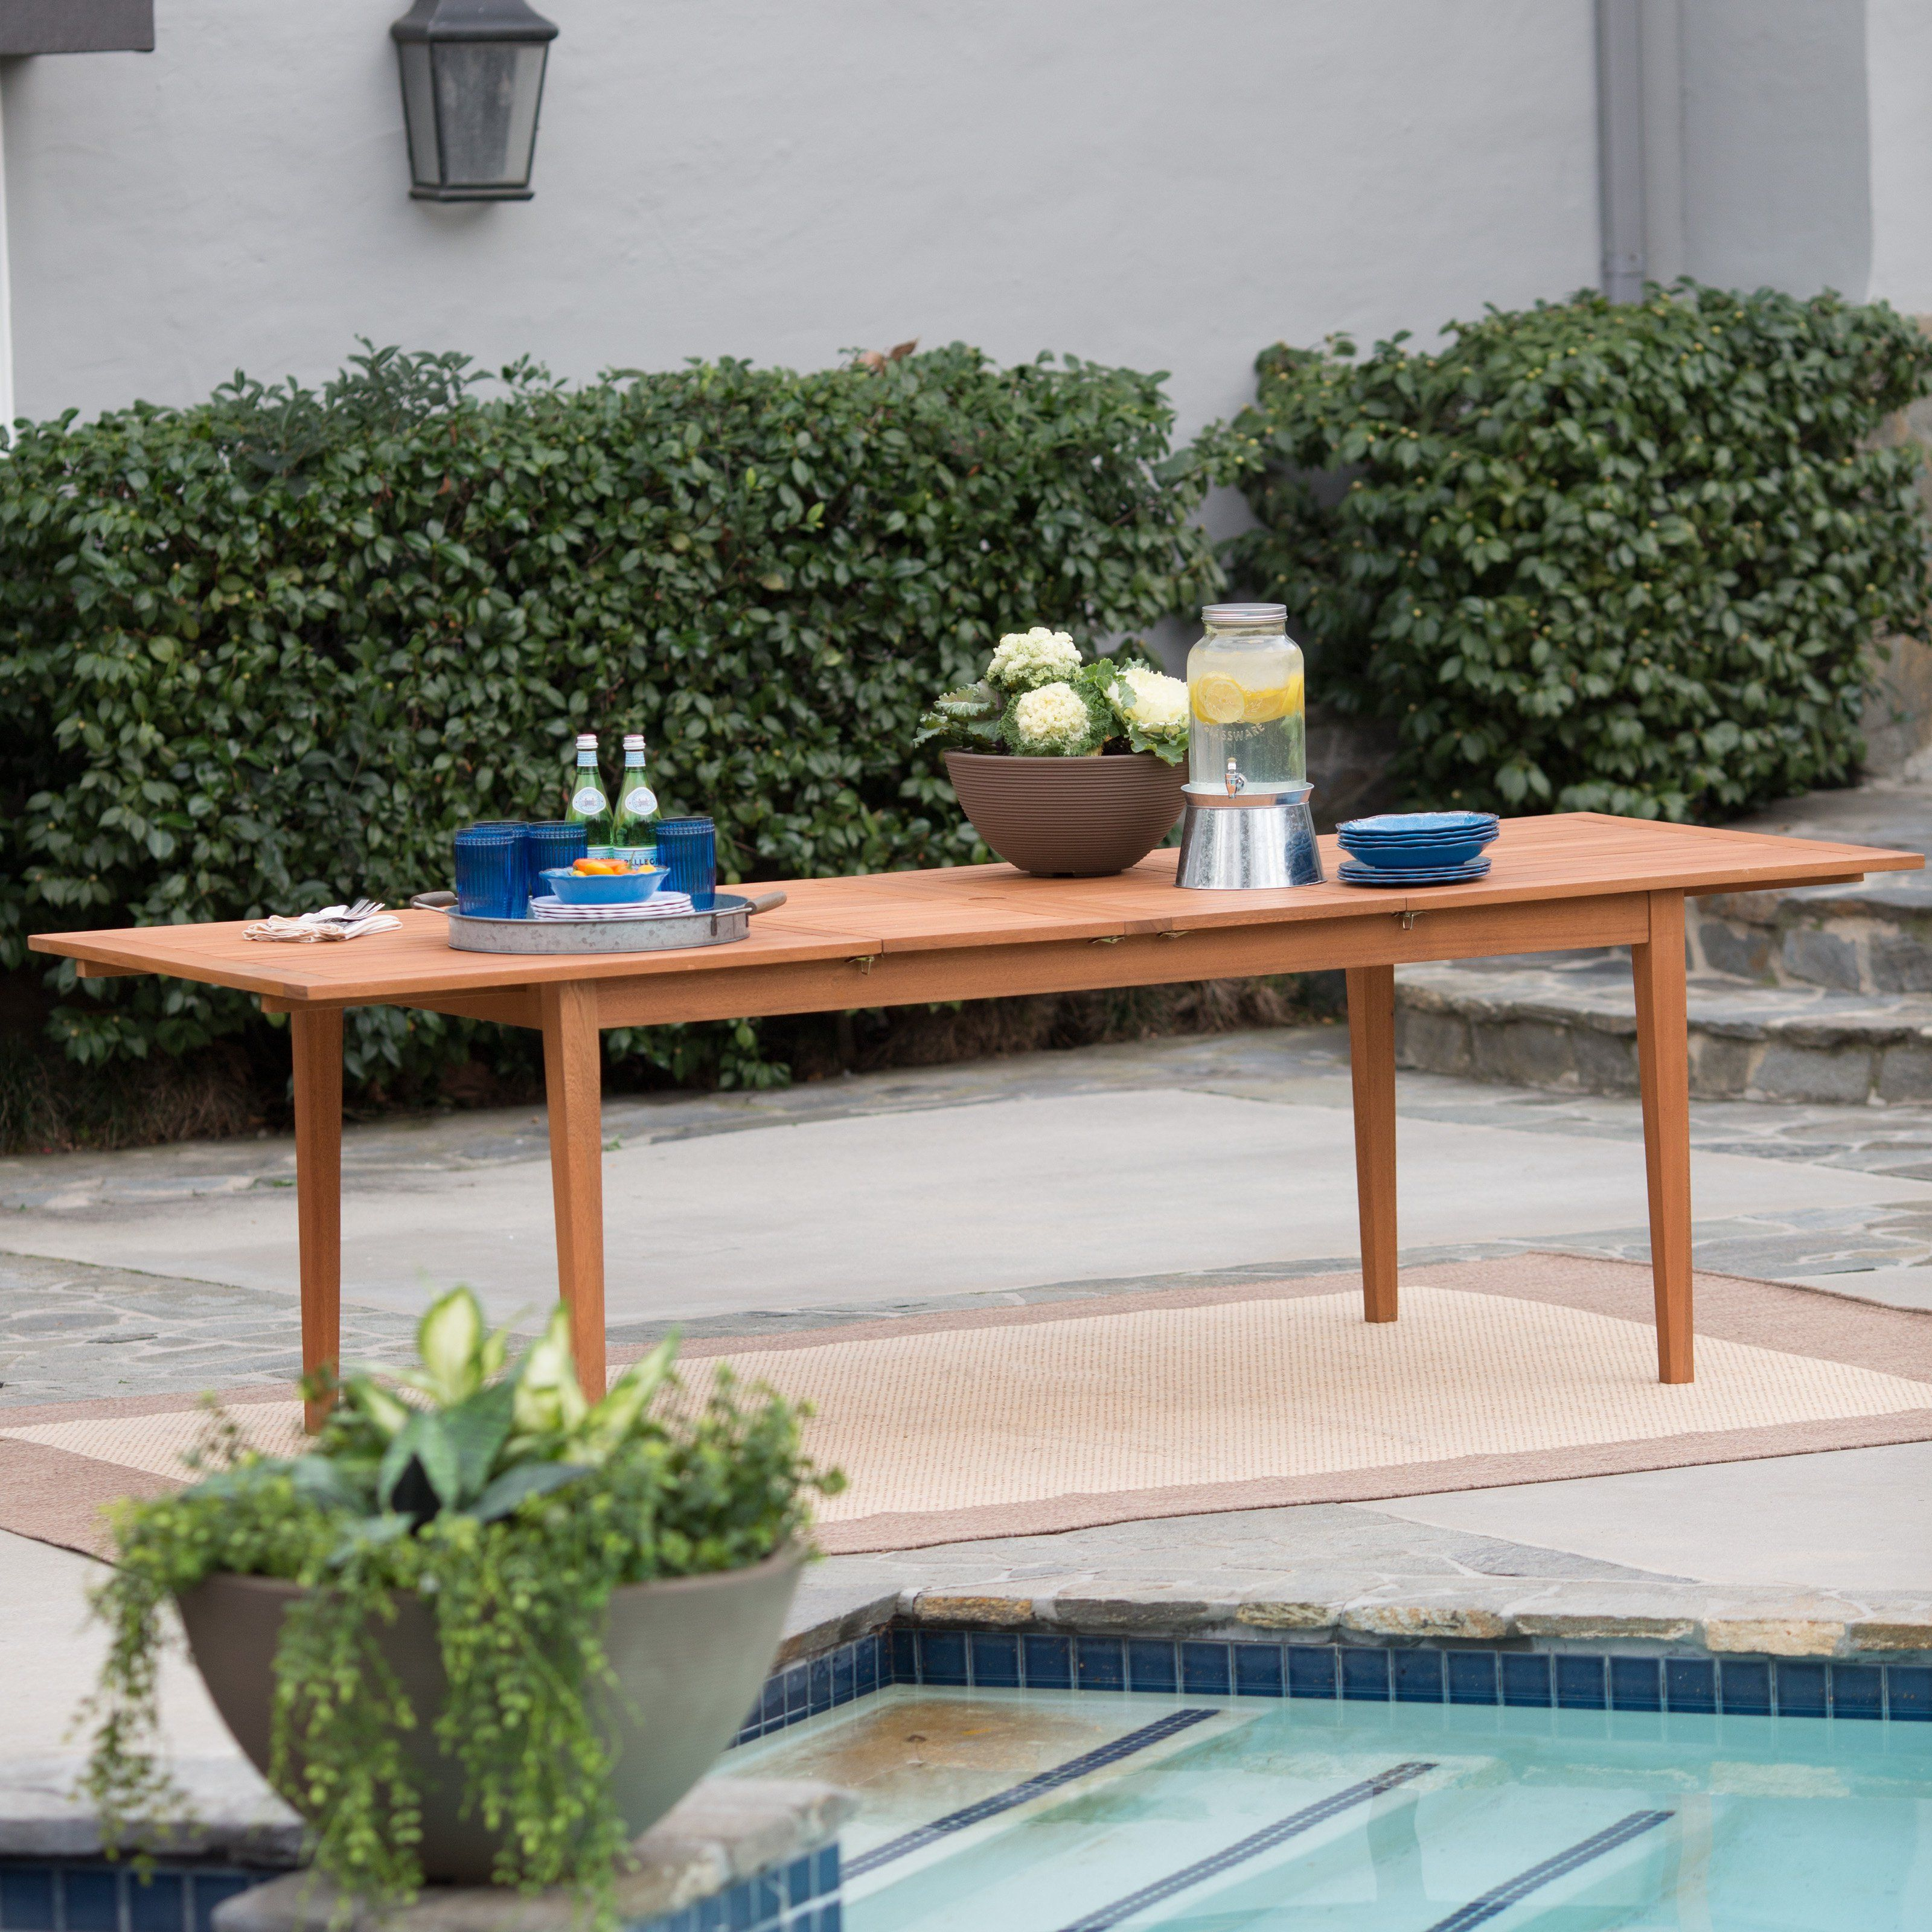 Have to have it. Belham Living Brighton Extension Outdoor Dining Table - Natural - $749.99 @hayneedle